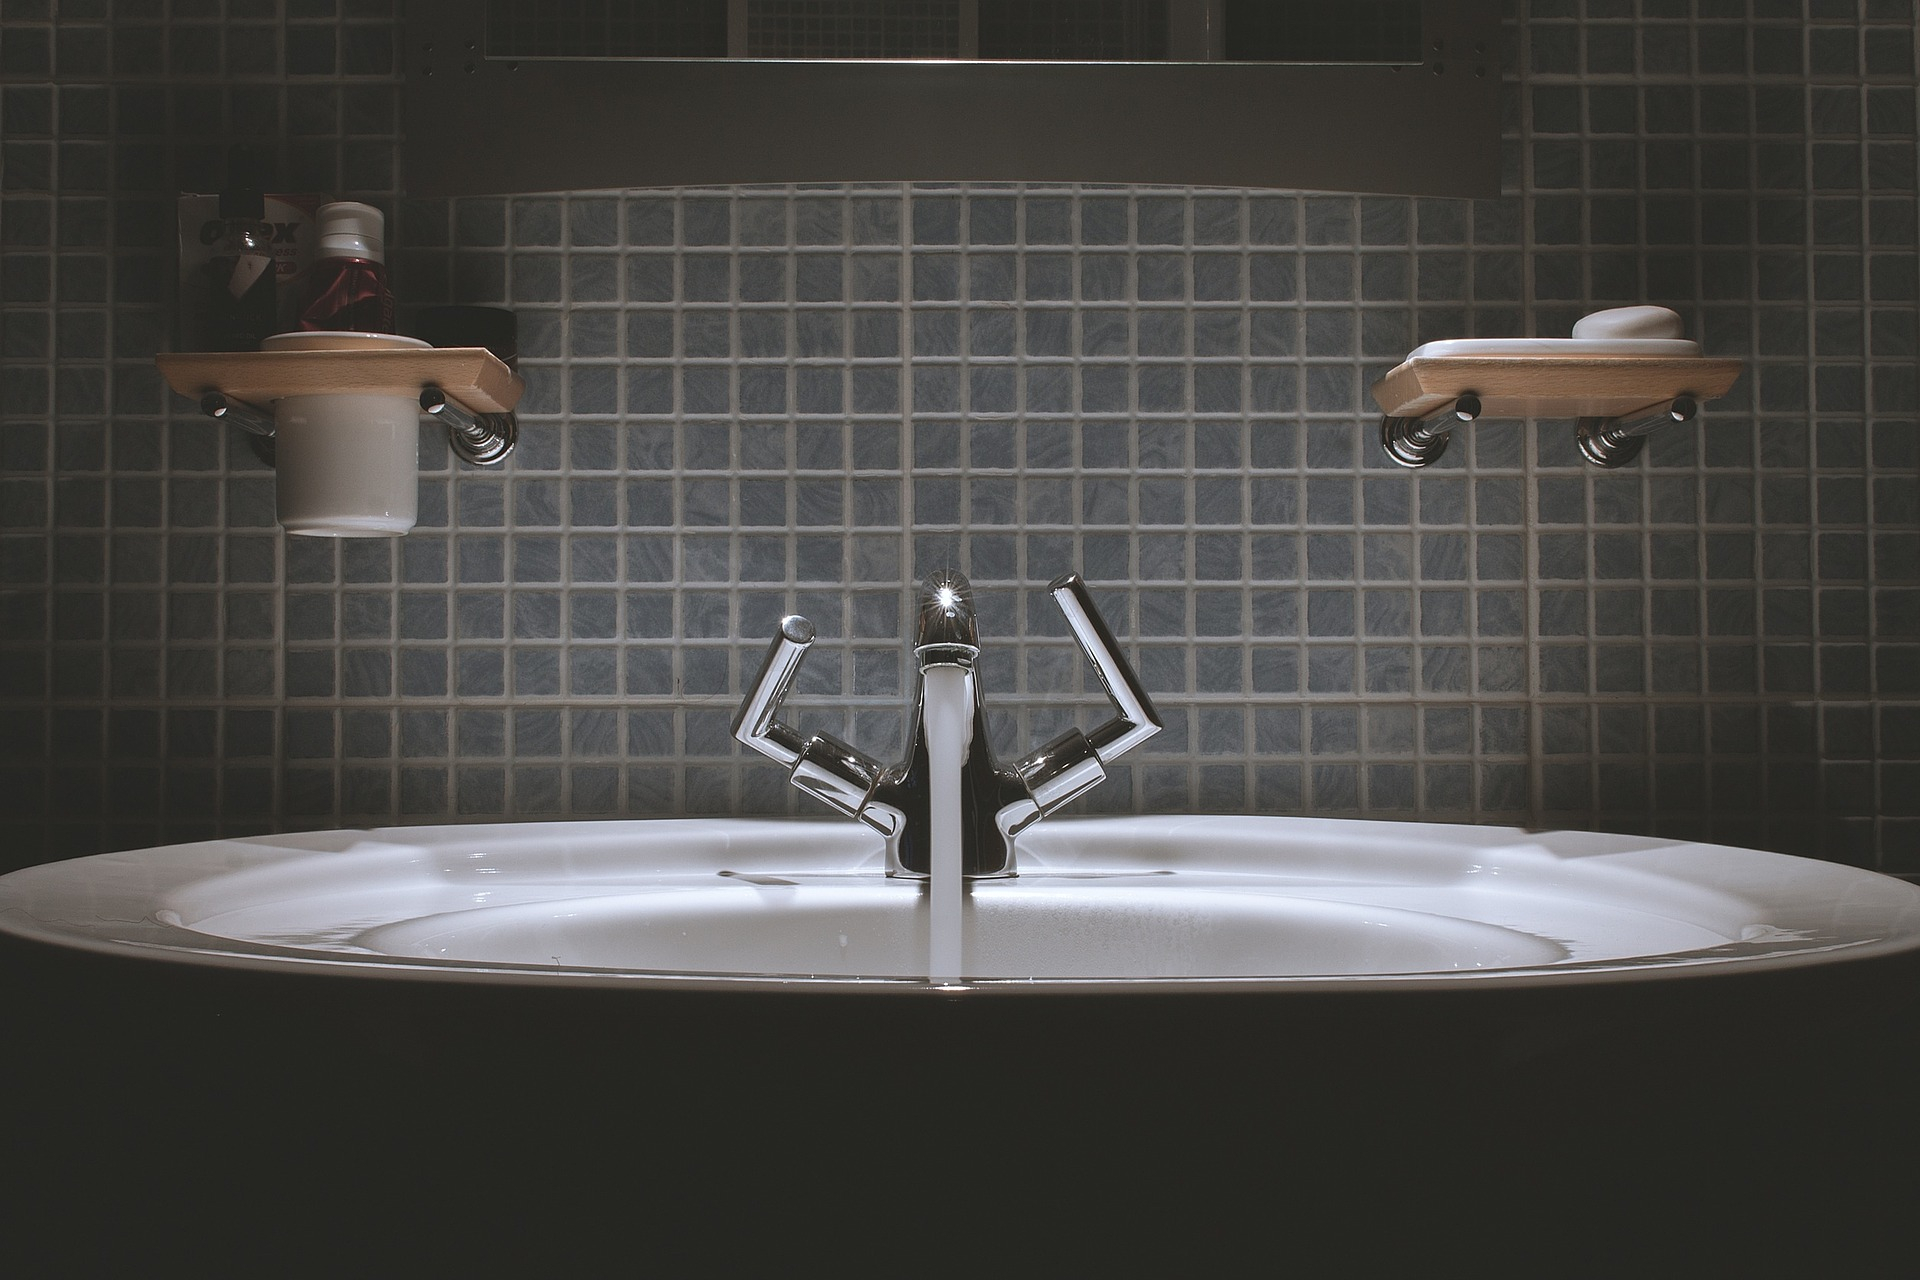 Water Faucet Types for Kitchen and Bathroom - Matchness.com